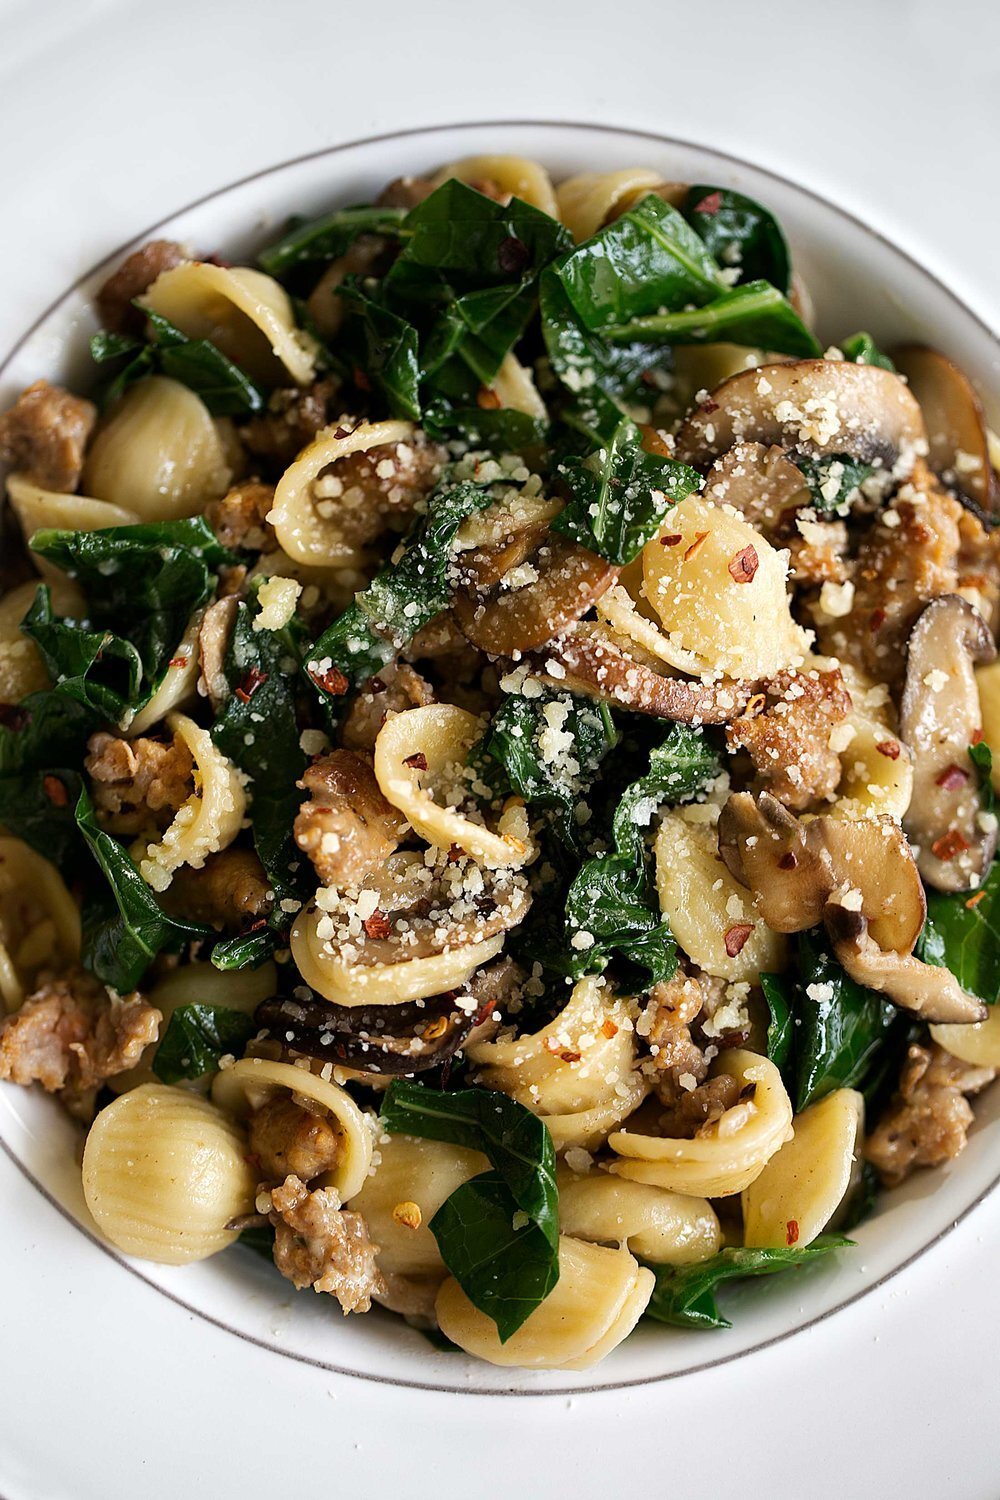 Orecchiette with Collard Greens, Sausage & Mixed Mushrooms